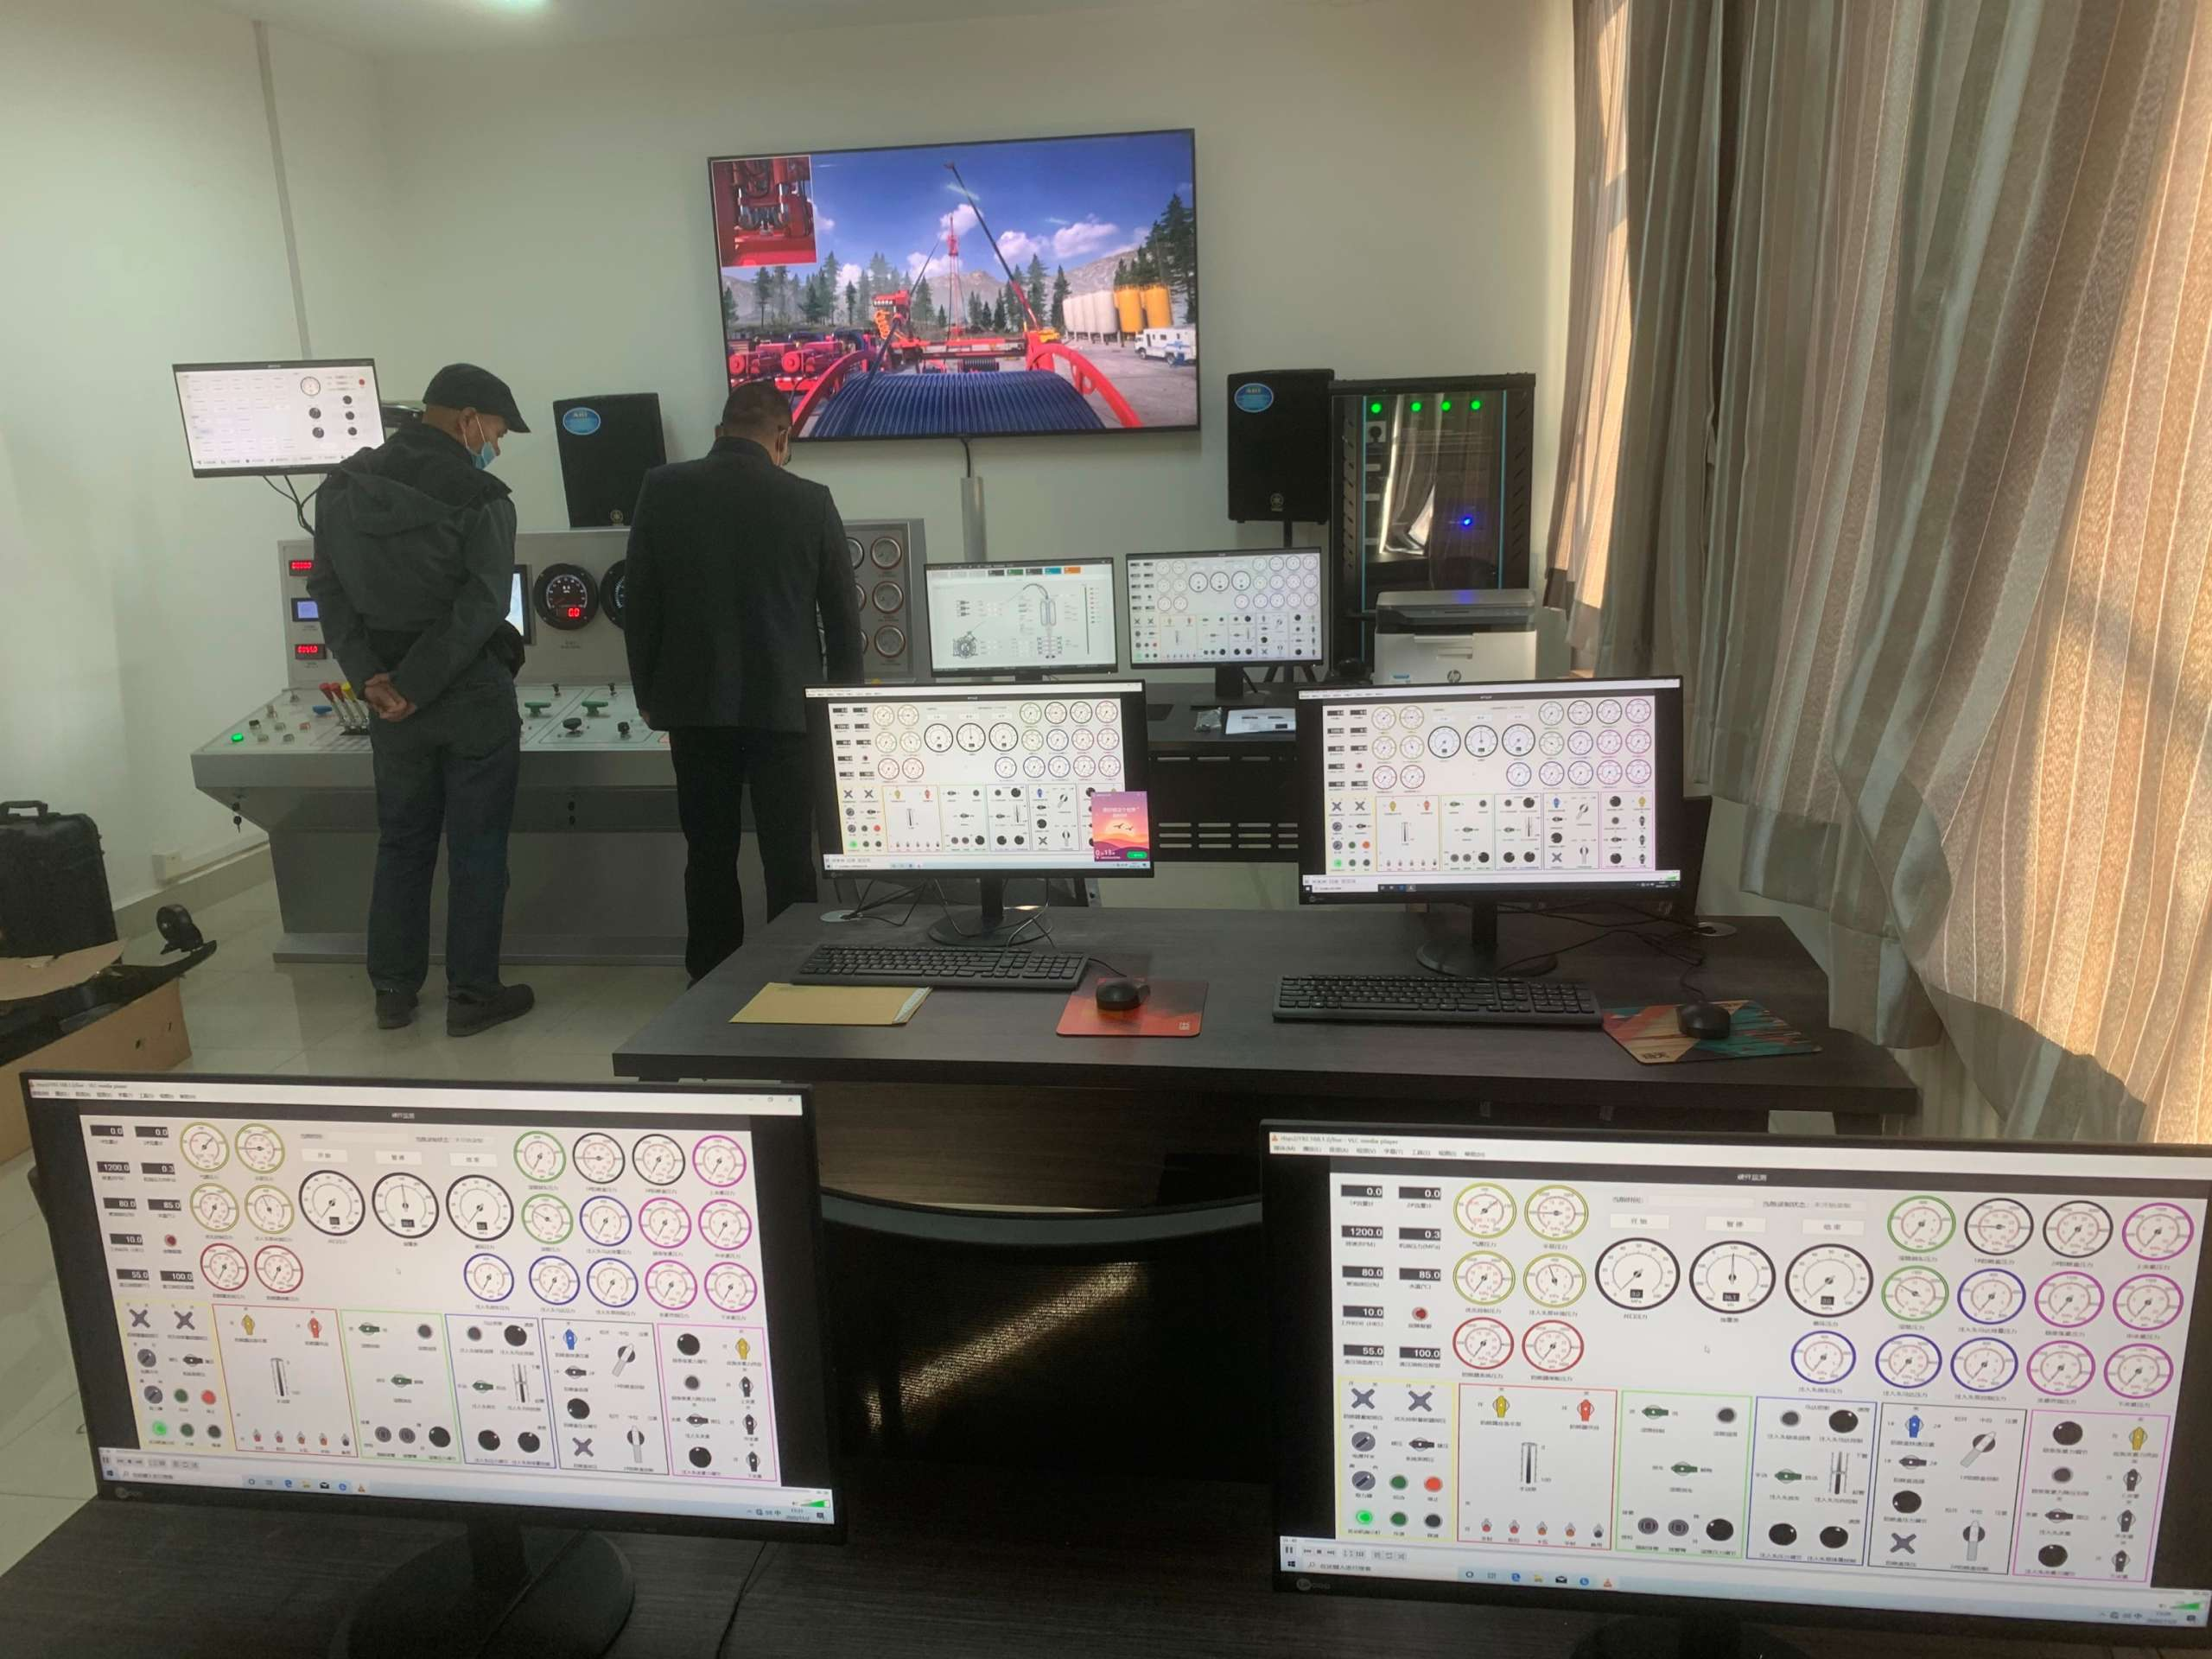 Multi-screen display